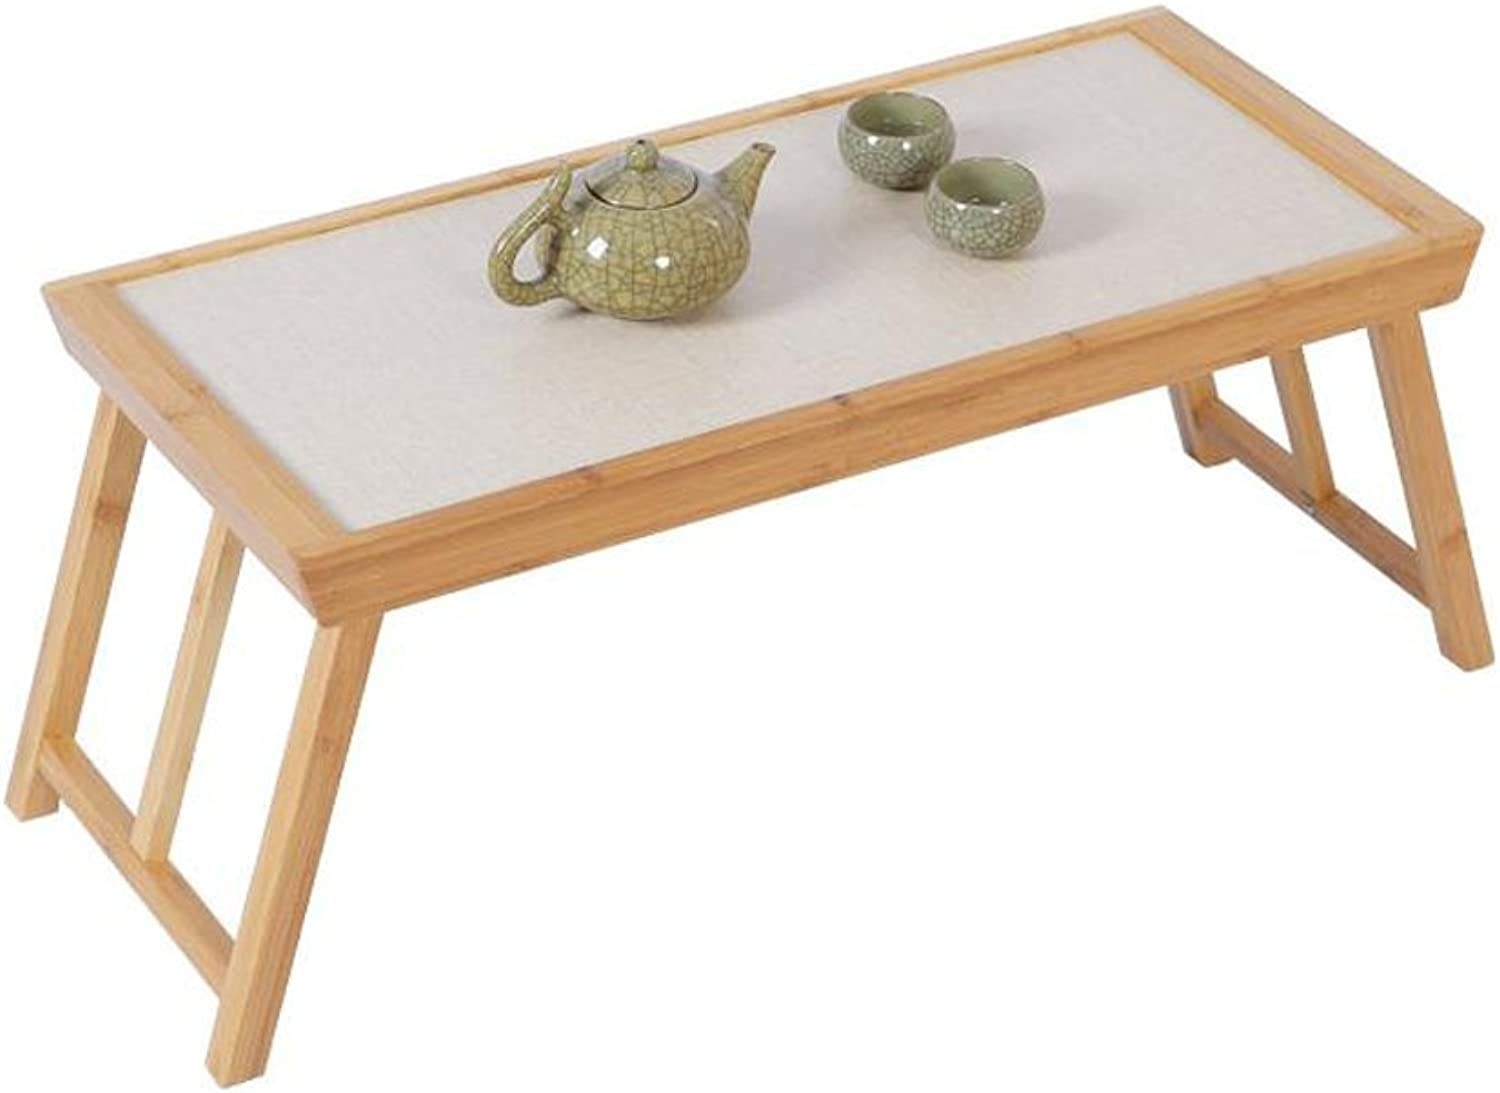 Folding Table Window Table Tea Table-Style Simple Folding Computer Tables Small Coffee Table Desk